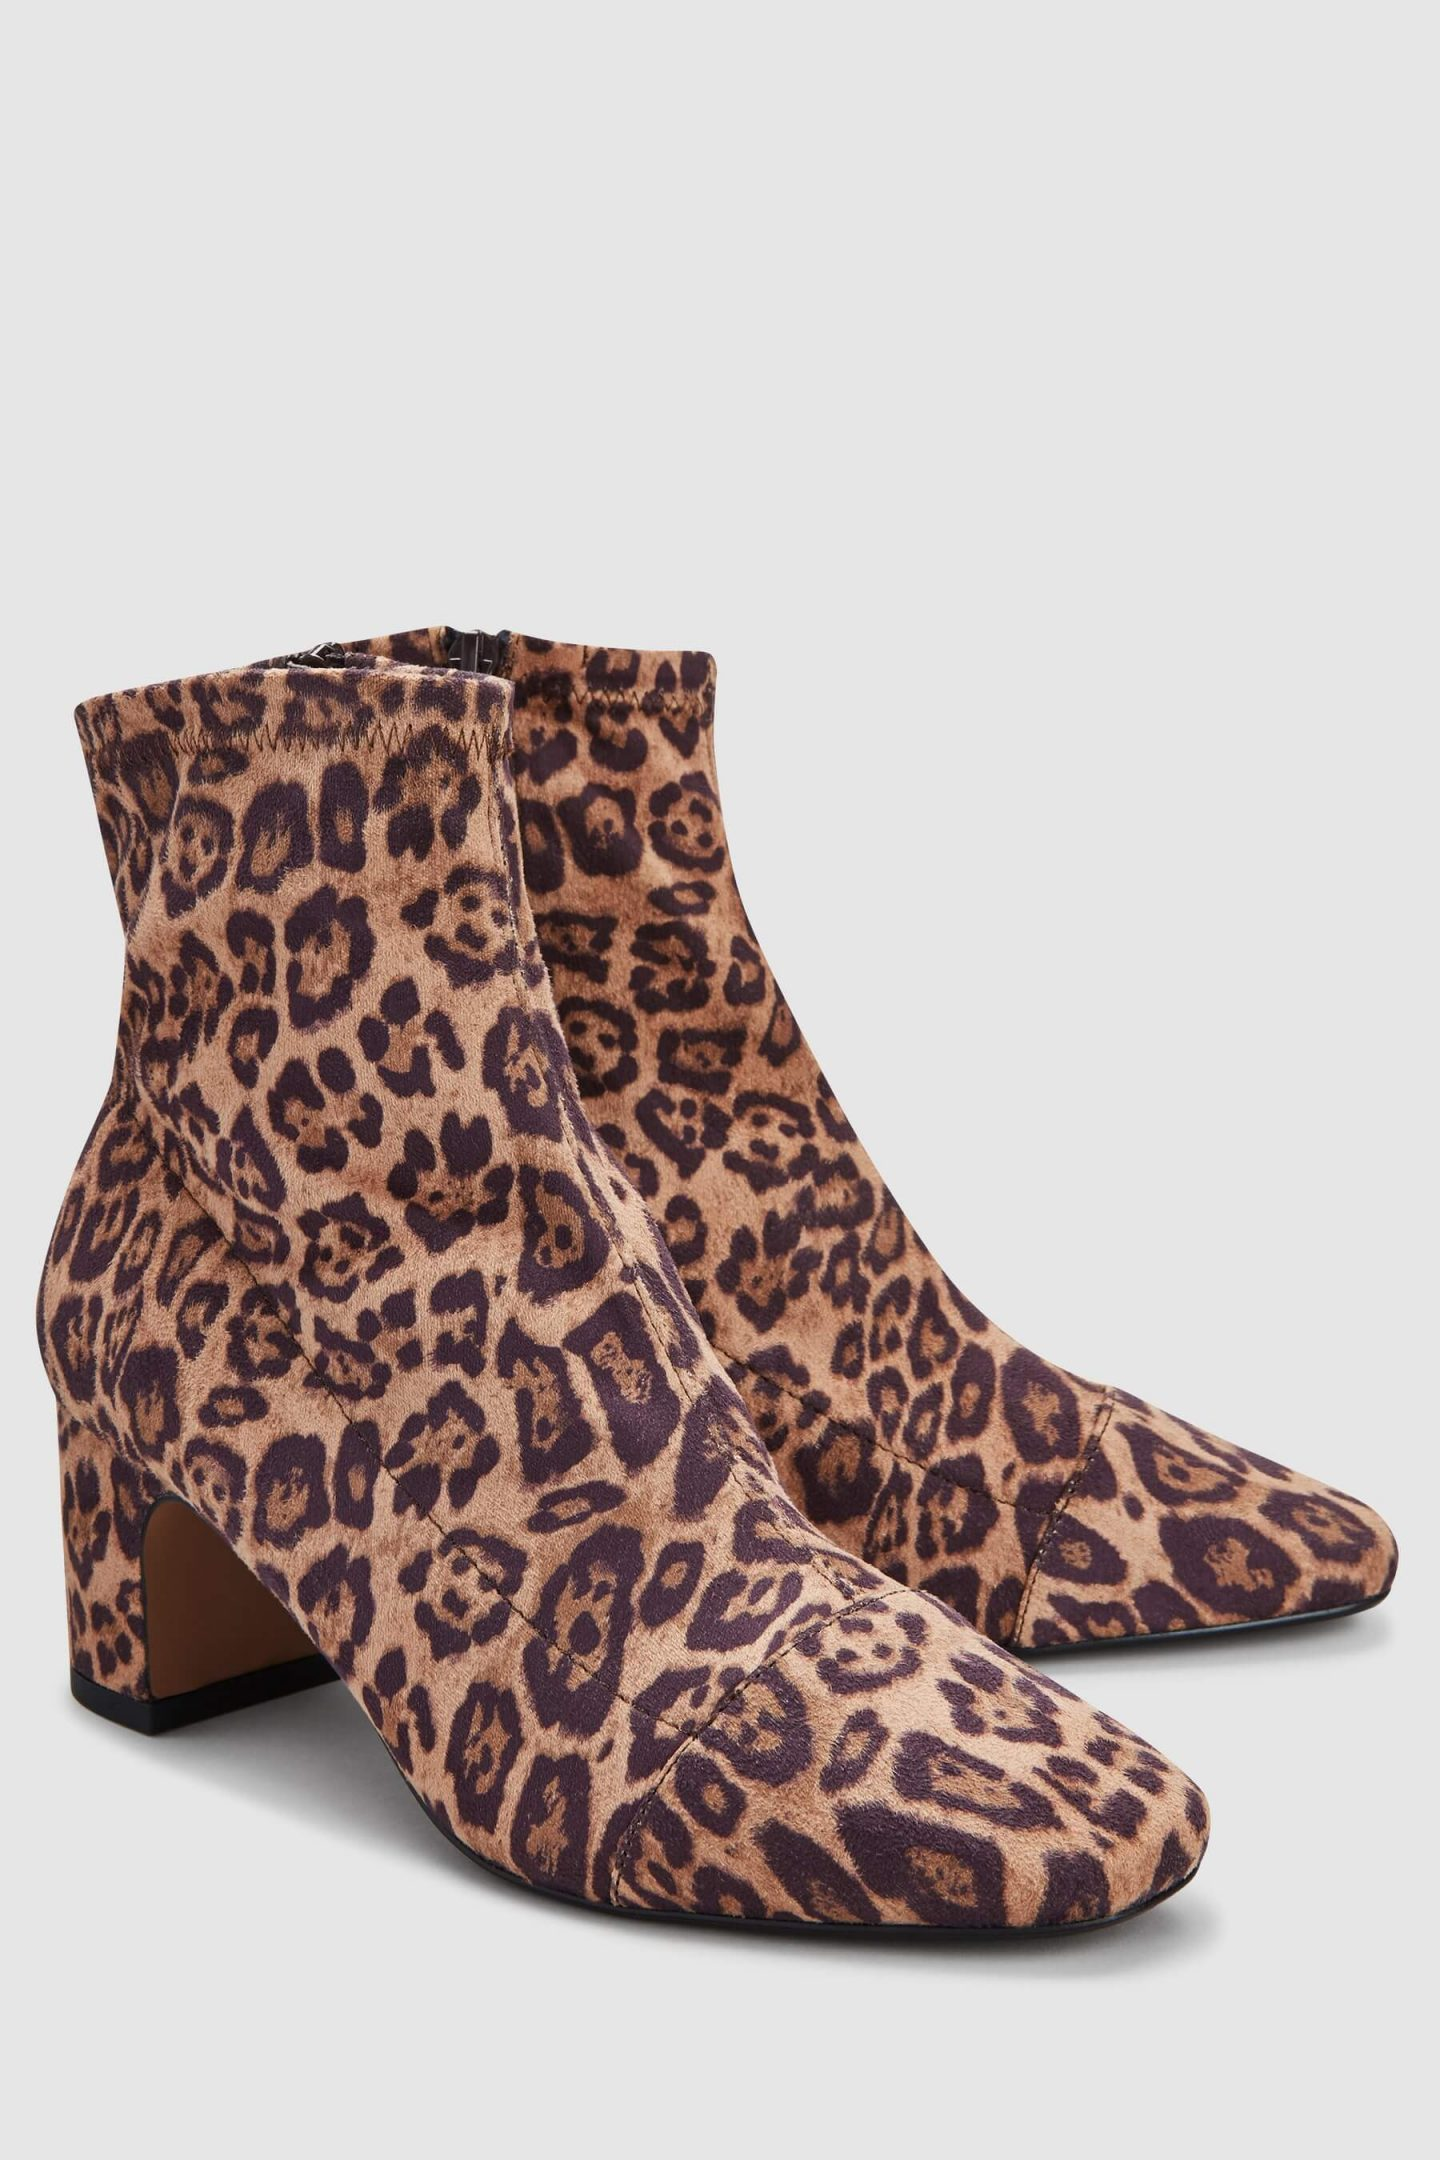 Next Leopard Sock Boots Best Before End Date